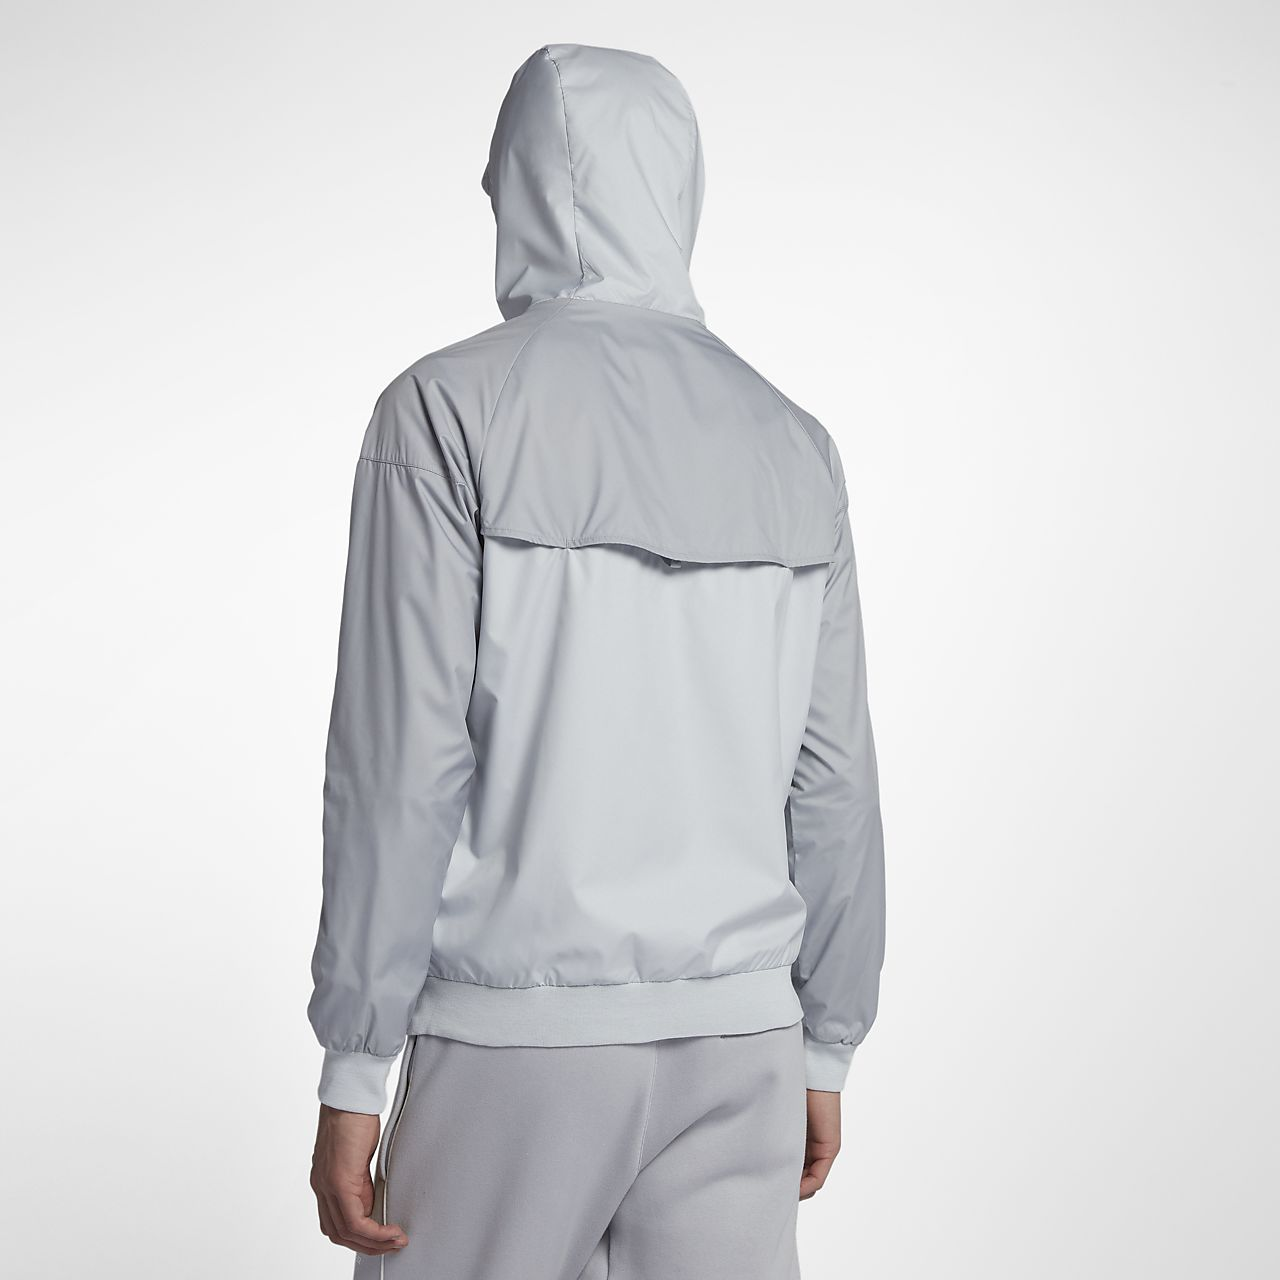 03b6e7e26ca306 Low Resolution Nike Sportswear Windrunner Men s Jacket Nike Sportswear  Windrunner Men s Jacket